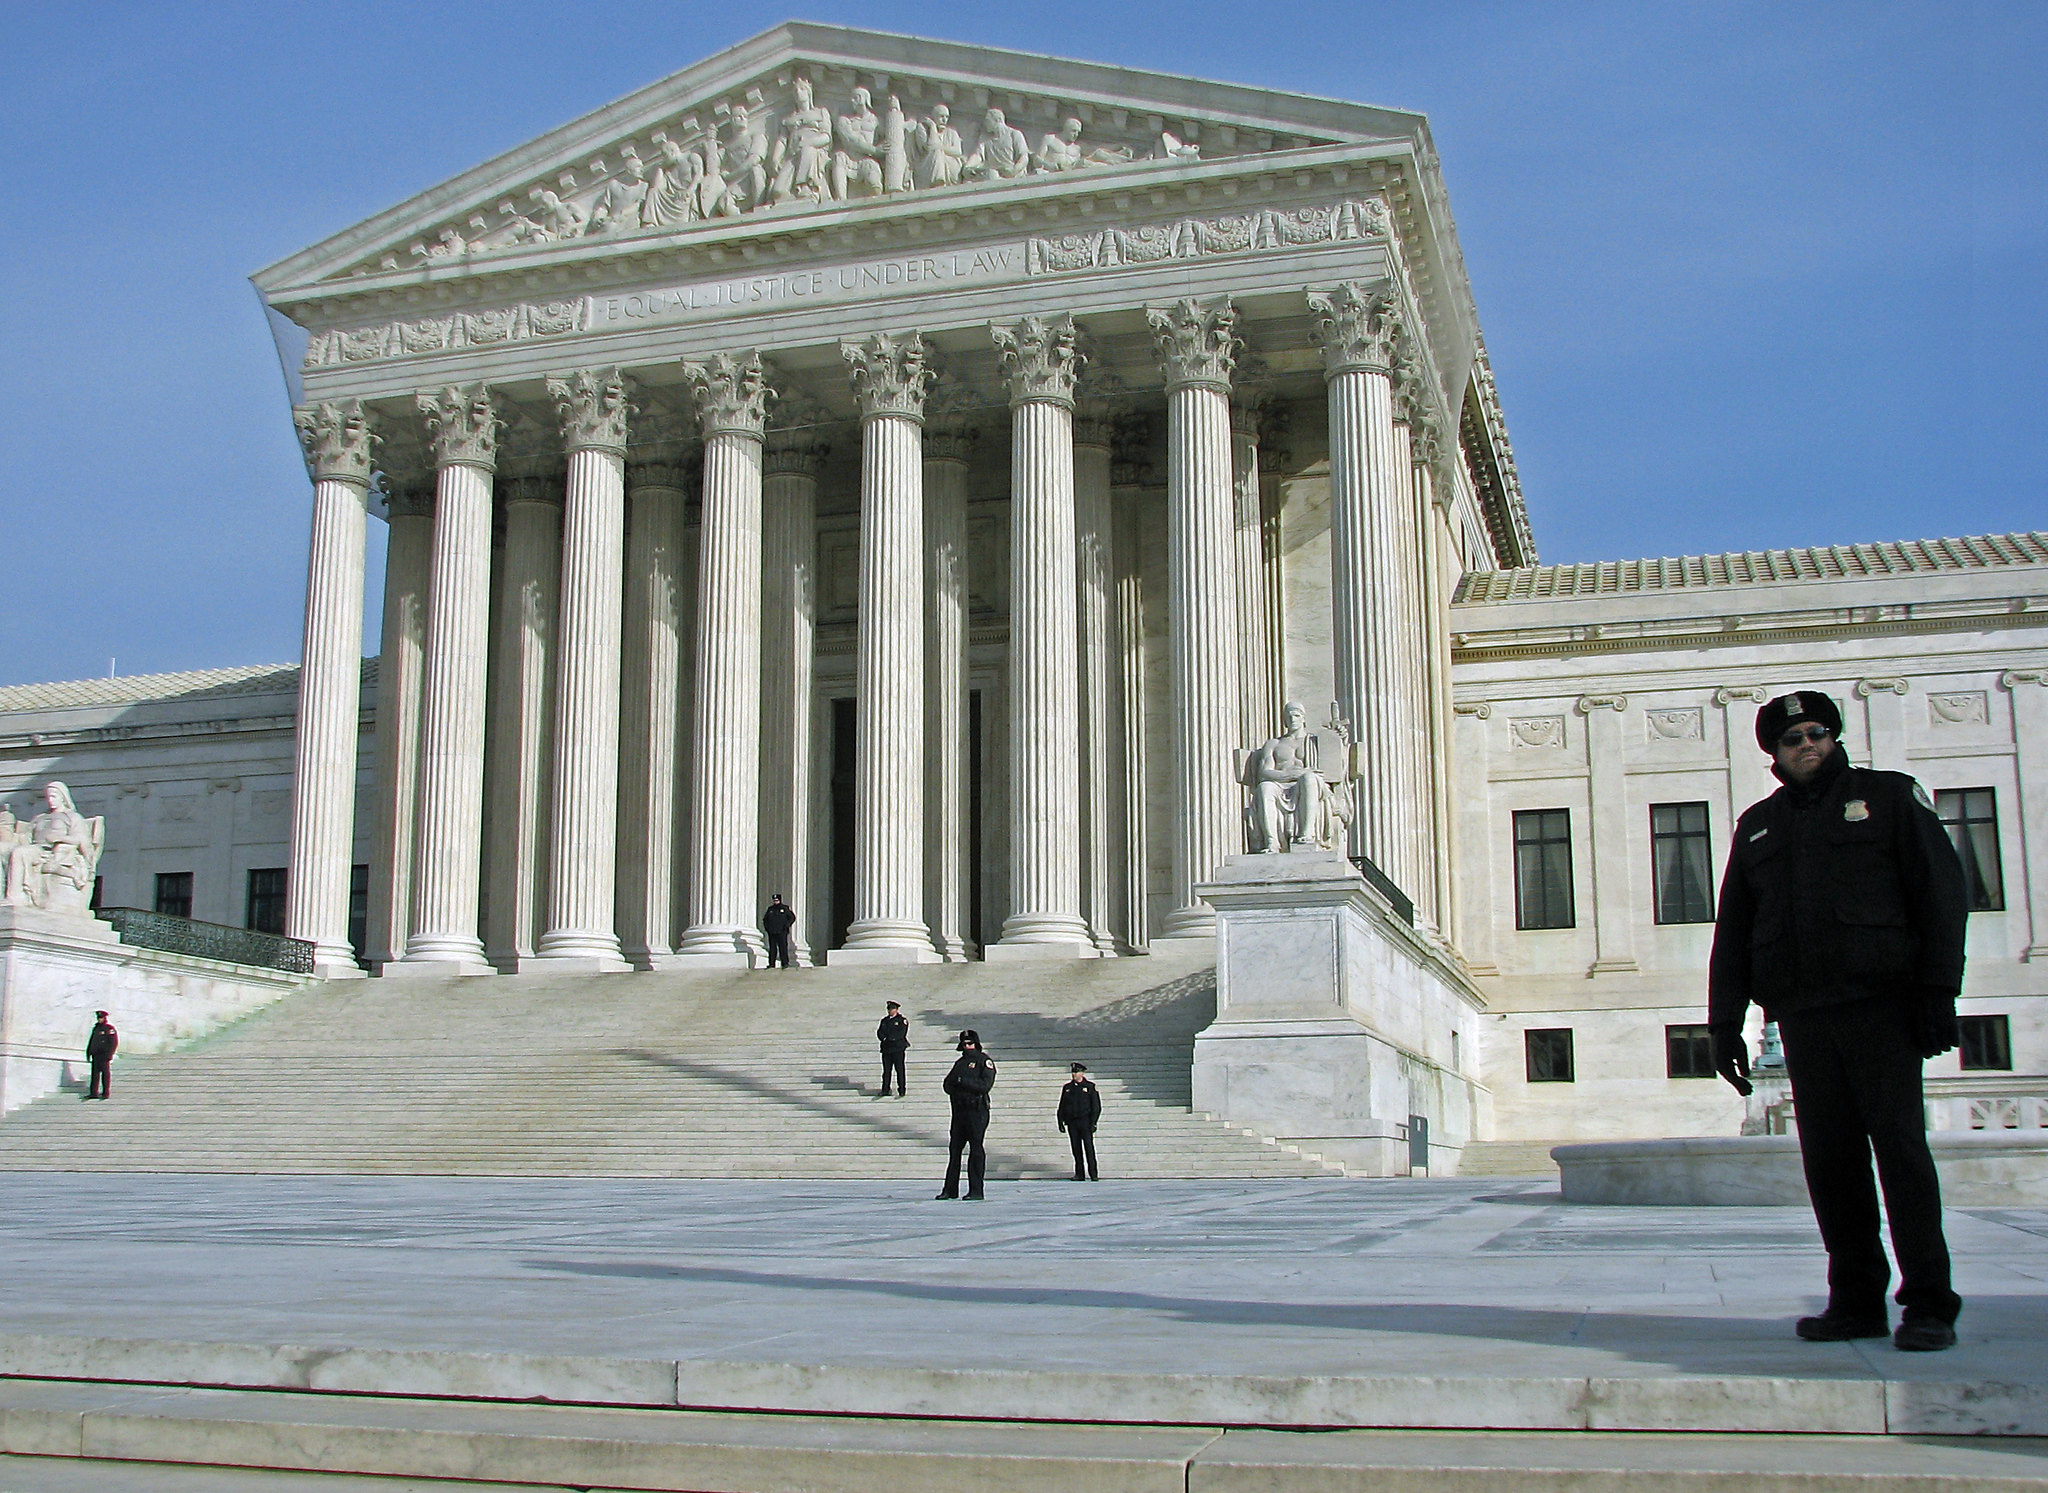 Supreme Court building with police officer standing on plaza